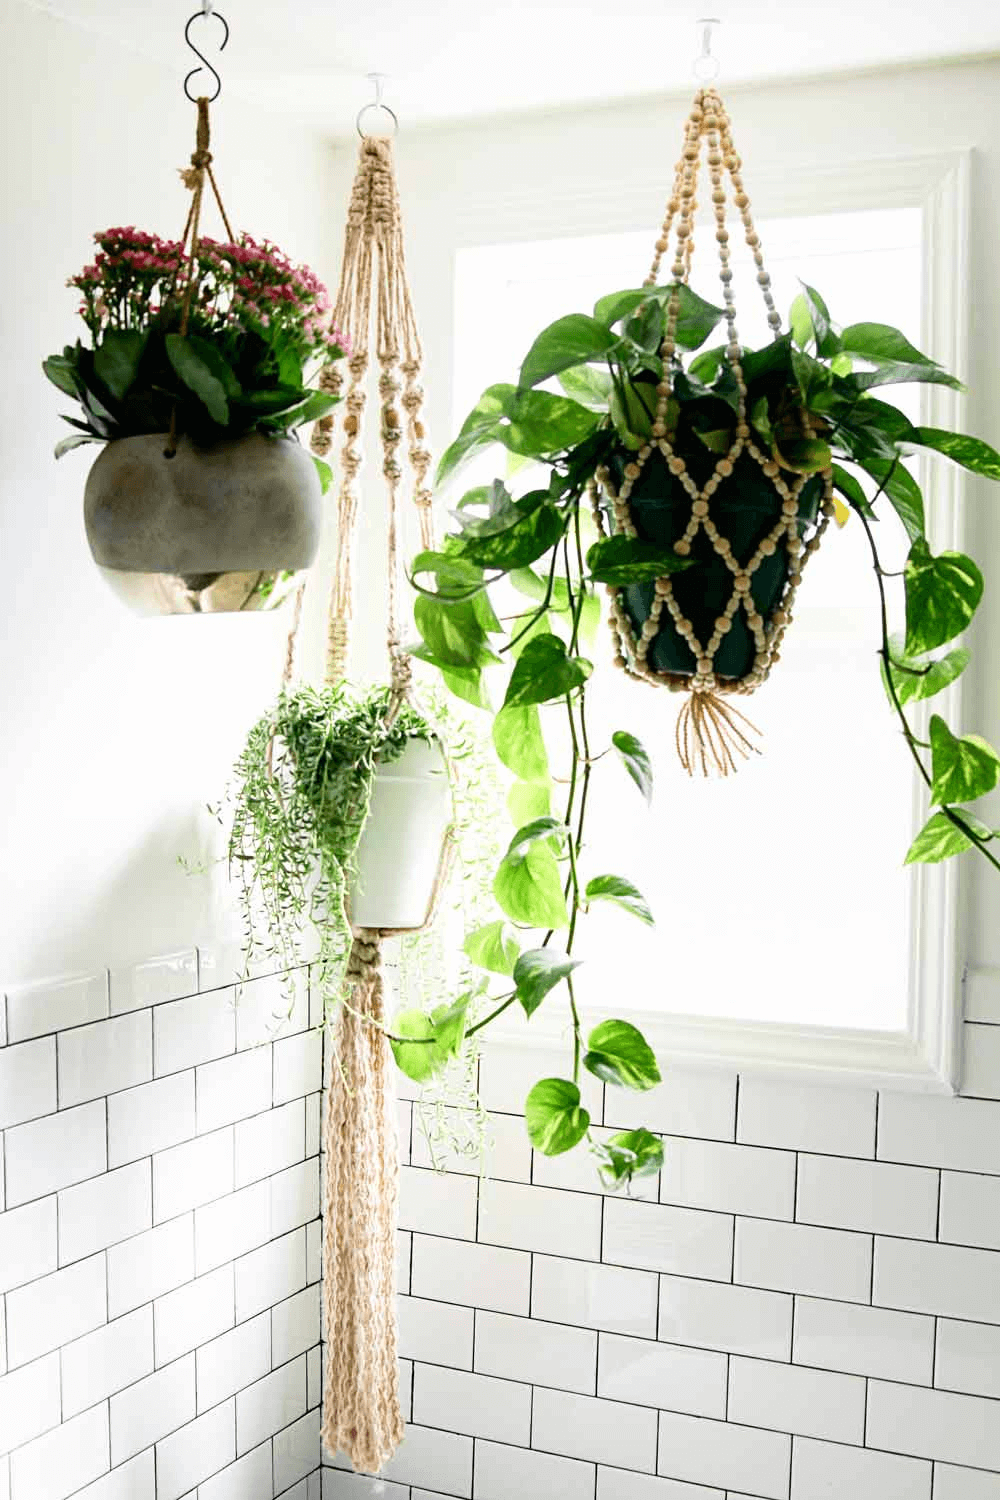 Hanging Plant Bathroom Small Spaces With Images Bathroom